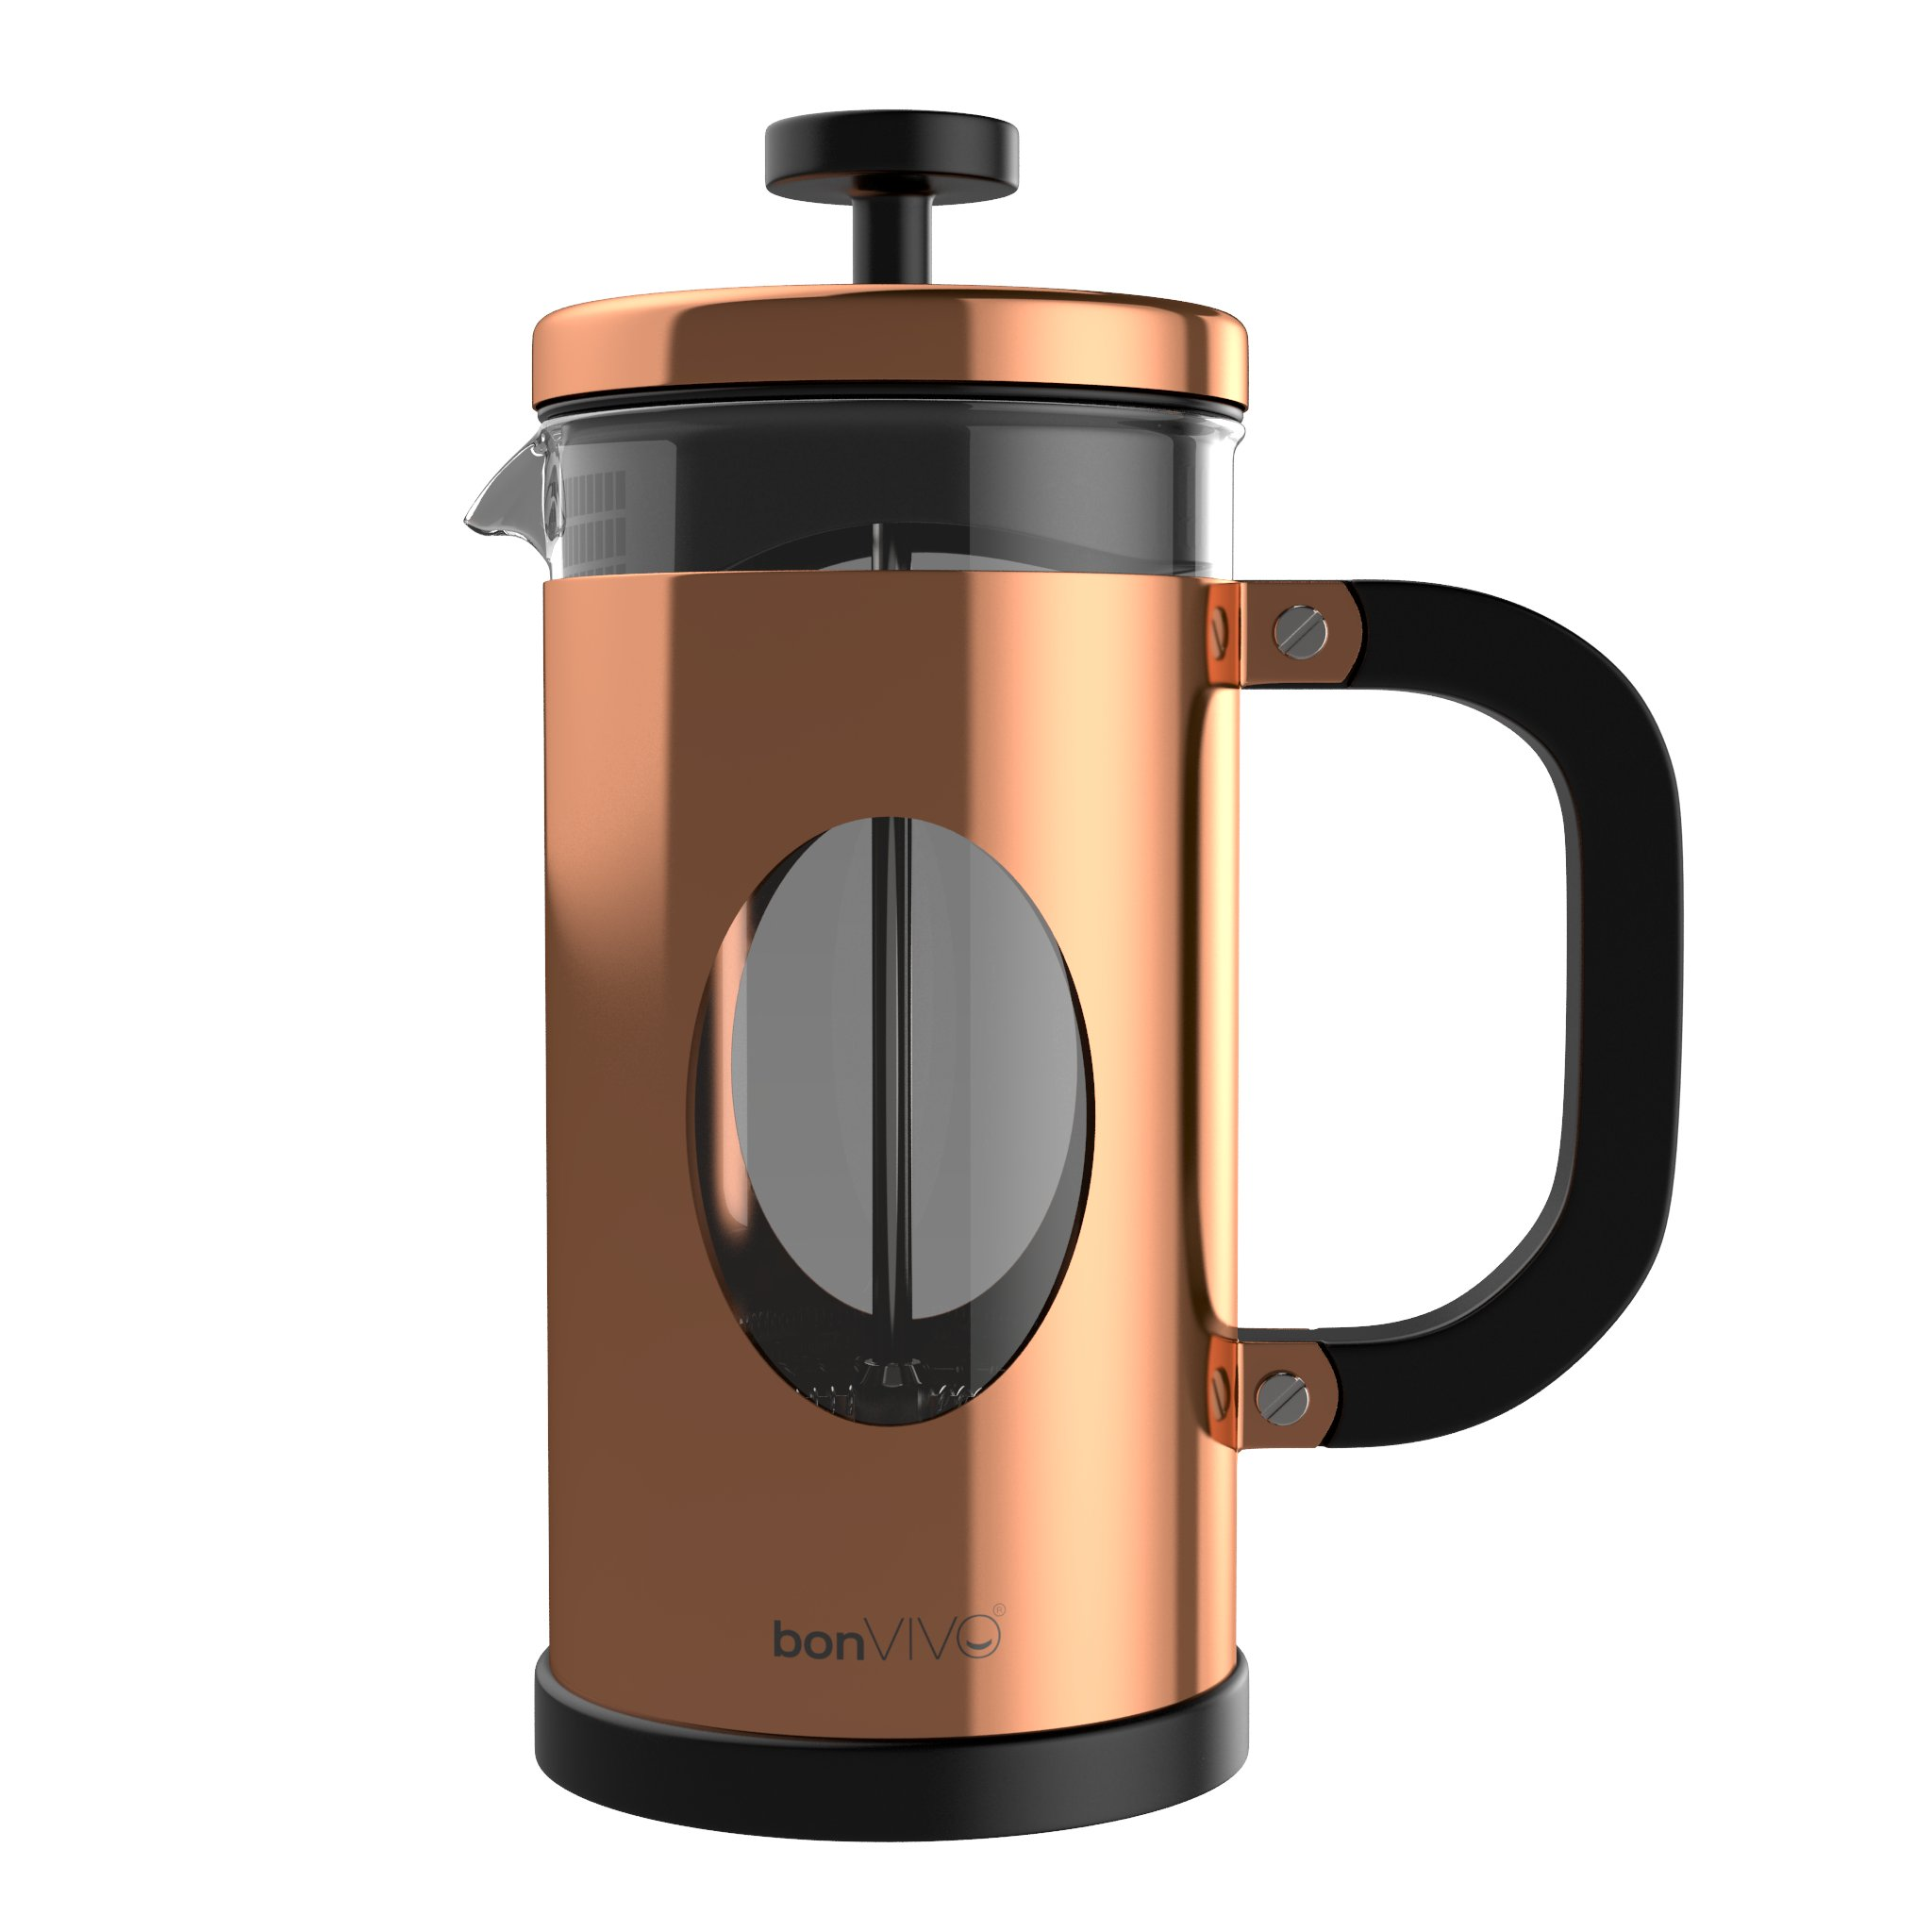 bonVIVO GAZETARO I French Press Coffee Maker, Cold Brew Coffee Makers Machine Made of Stainless Steel And Heat Resistant Borosilicate Glass, Coffee Press in Copper Finish, With Bonus Filter, 34 ounces by bonVIVO